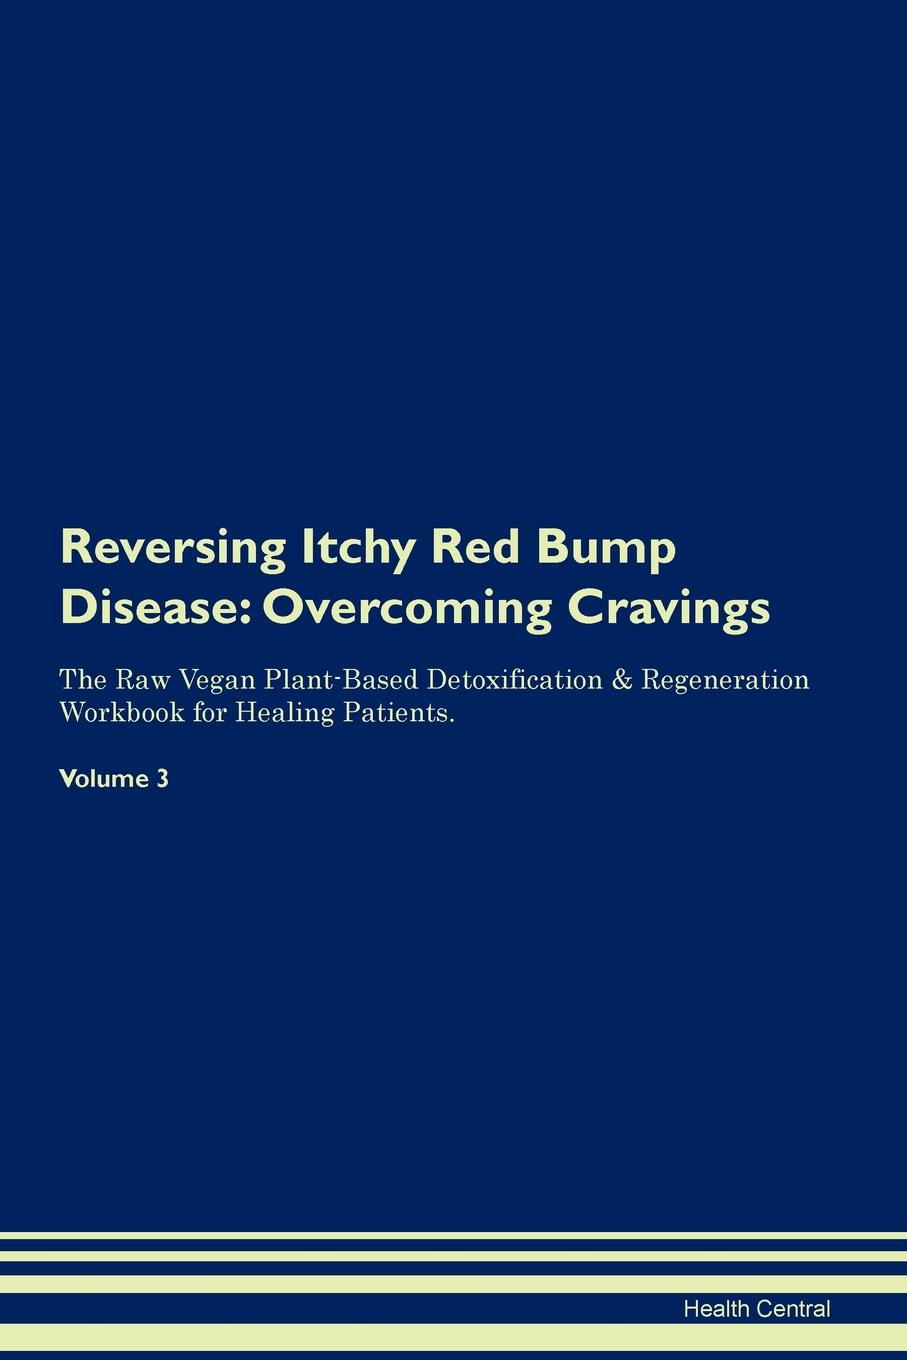 Health Central Reversing Itchy Red Bump Disease. Overcoming Cravings The Raw Vegan Plant-Based Detoxification . Regeneration Workbook for Healing Patients. Volume 3